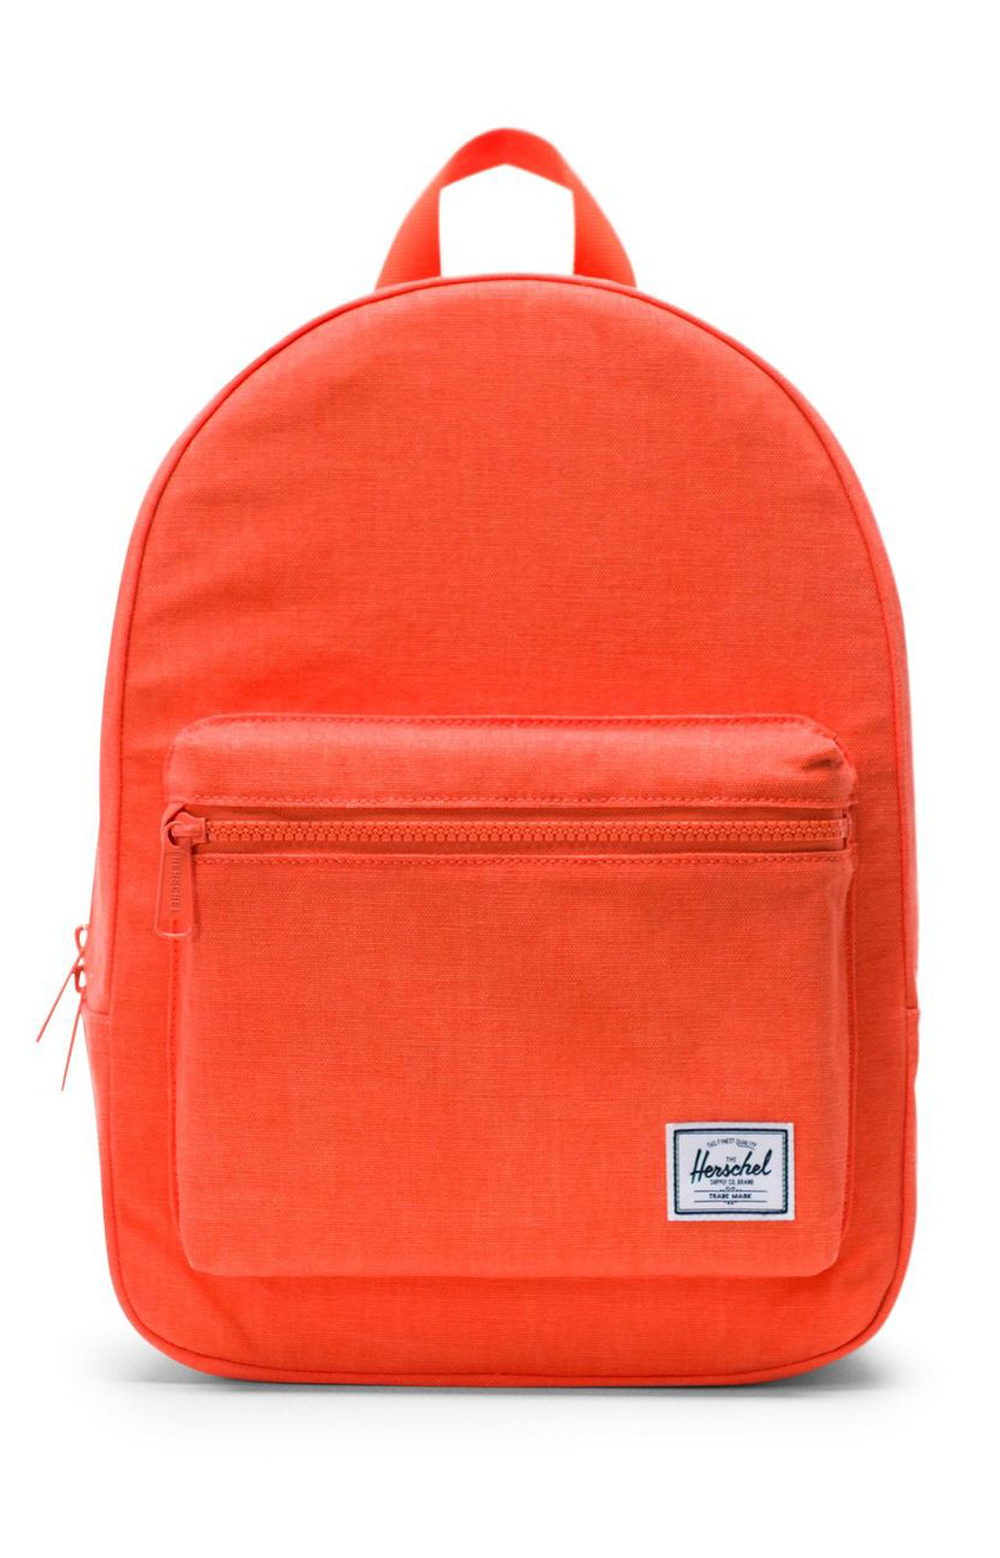 Grove XS Backpack - Canvas Vermillion Orange